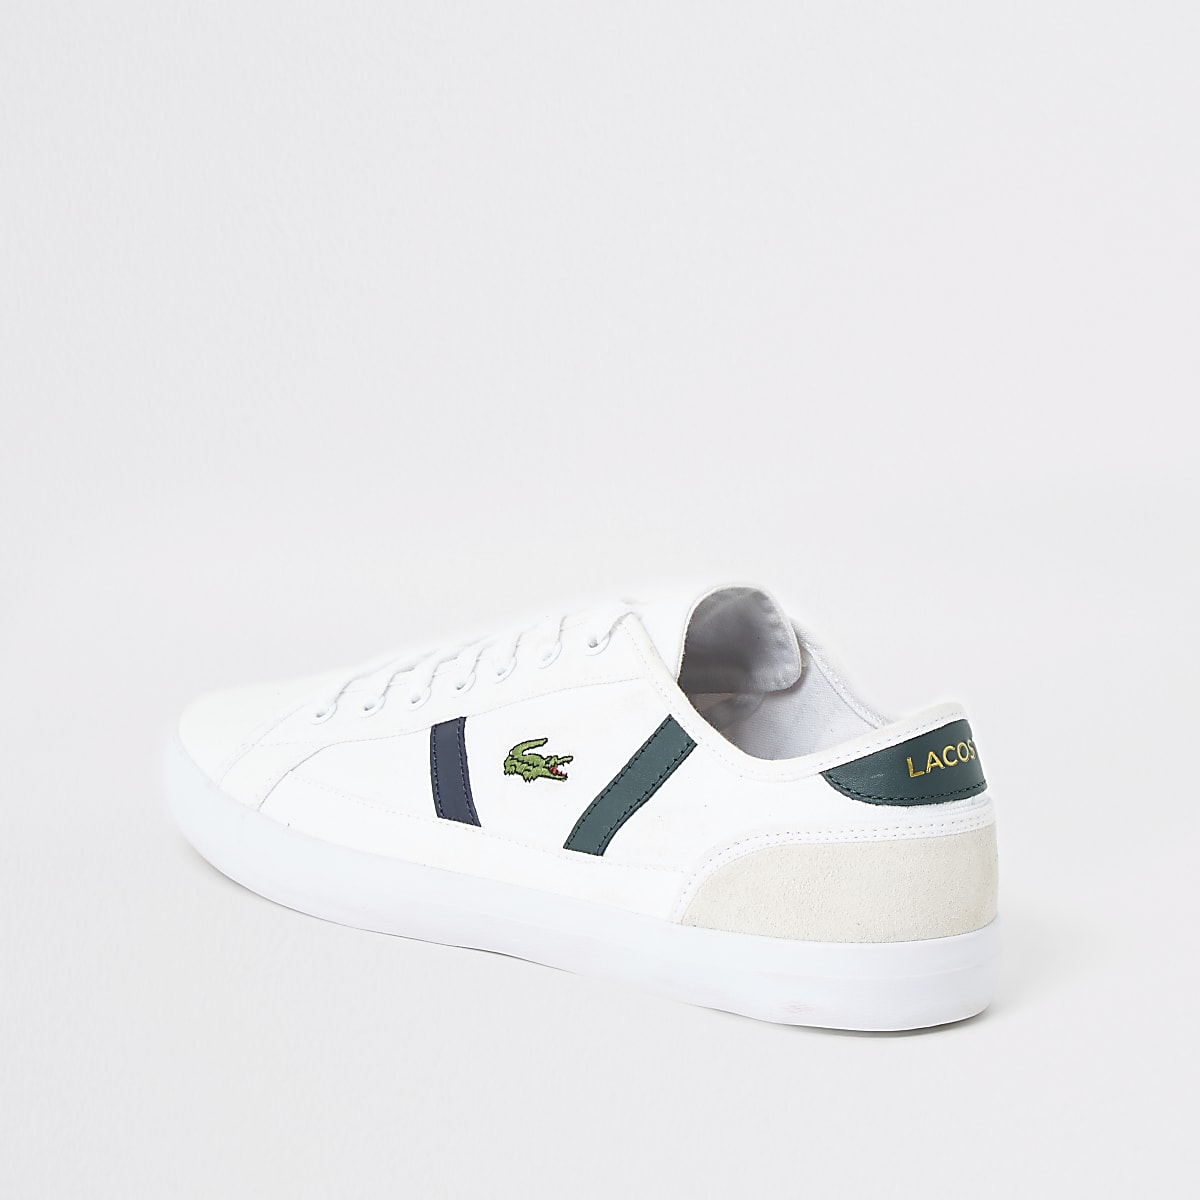 c0a7b905ca Lacoste white Sideline canvas trainers